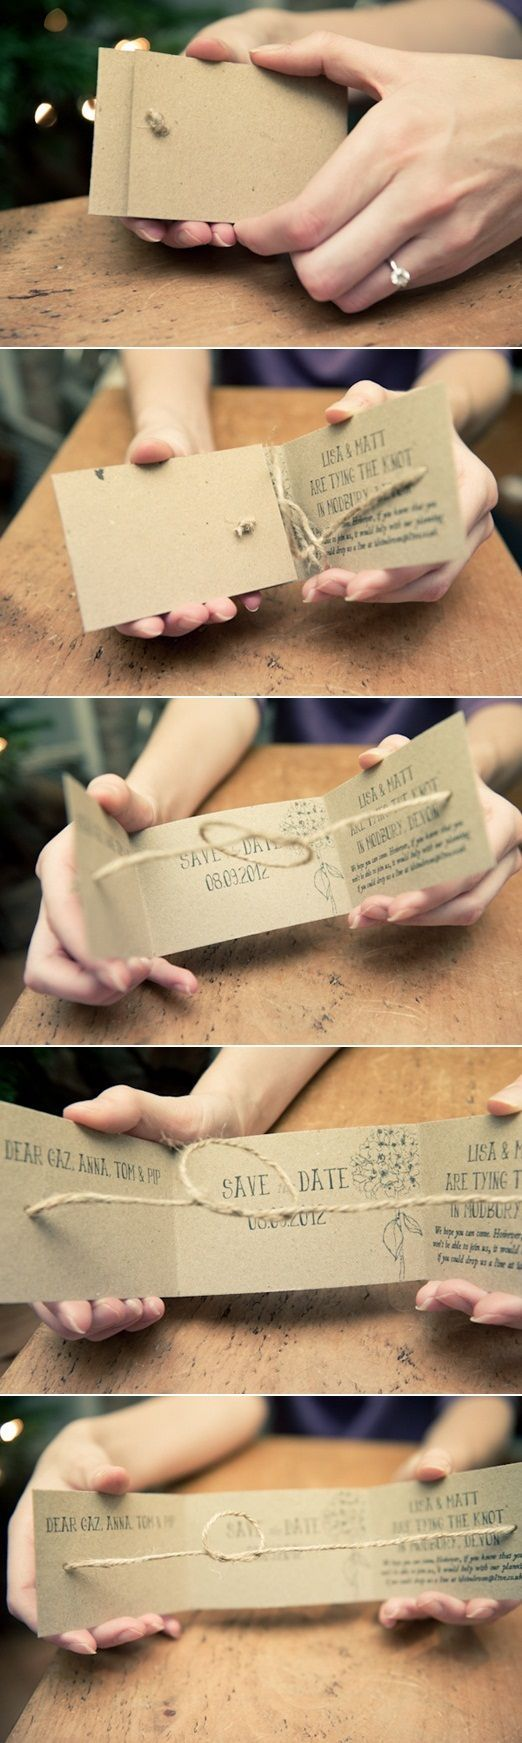 DIY Wedding - Tying the knot save the date! Love this!